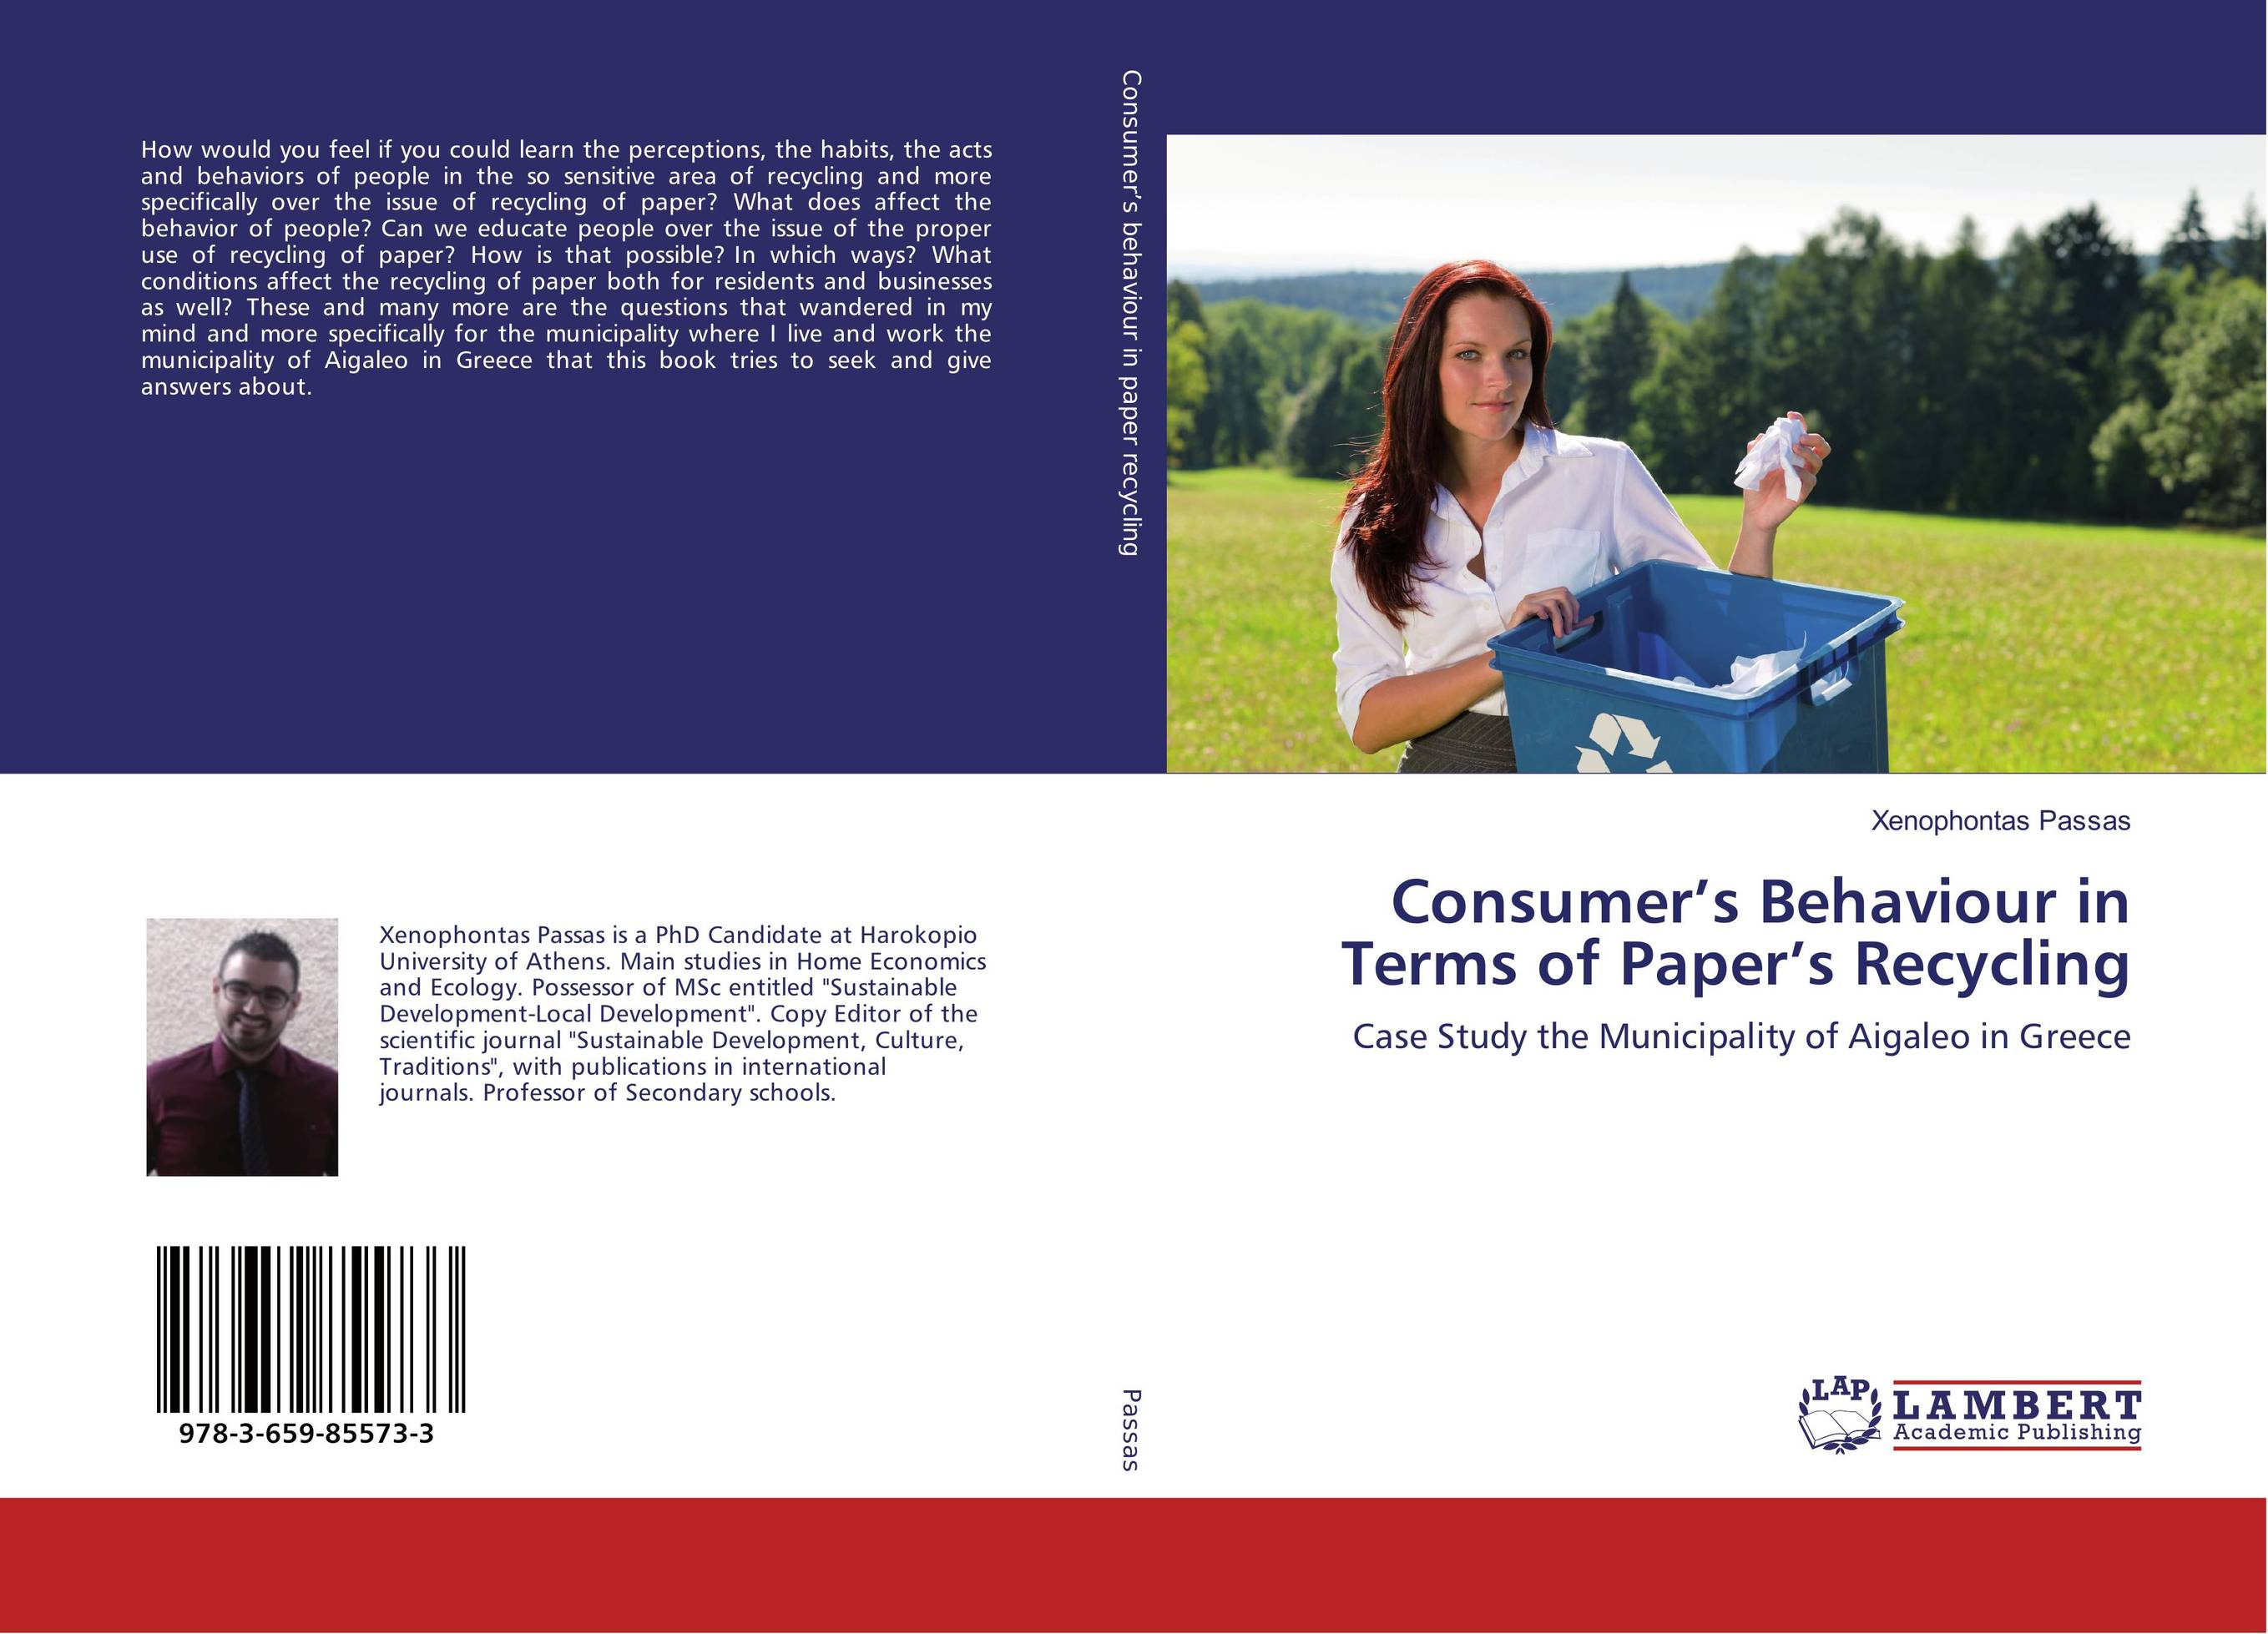 Consumer's Behaviour in Terms of Paper's Recycling more of me